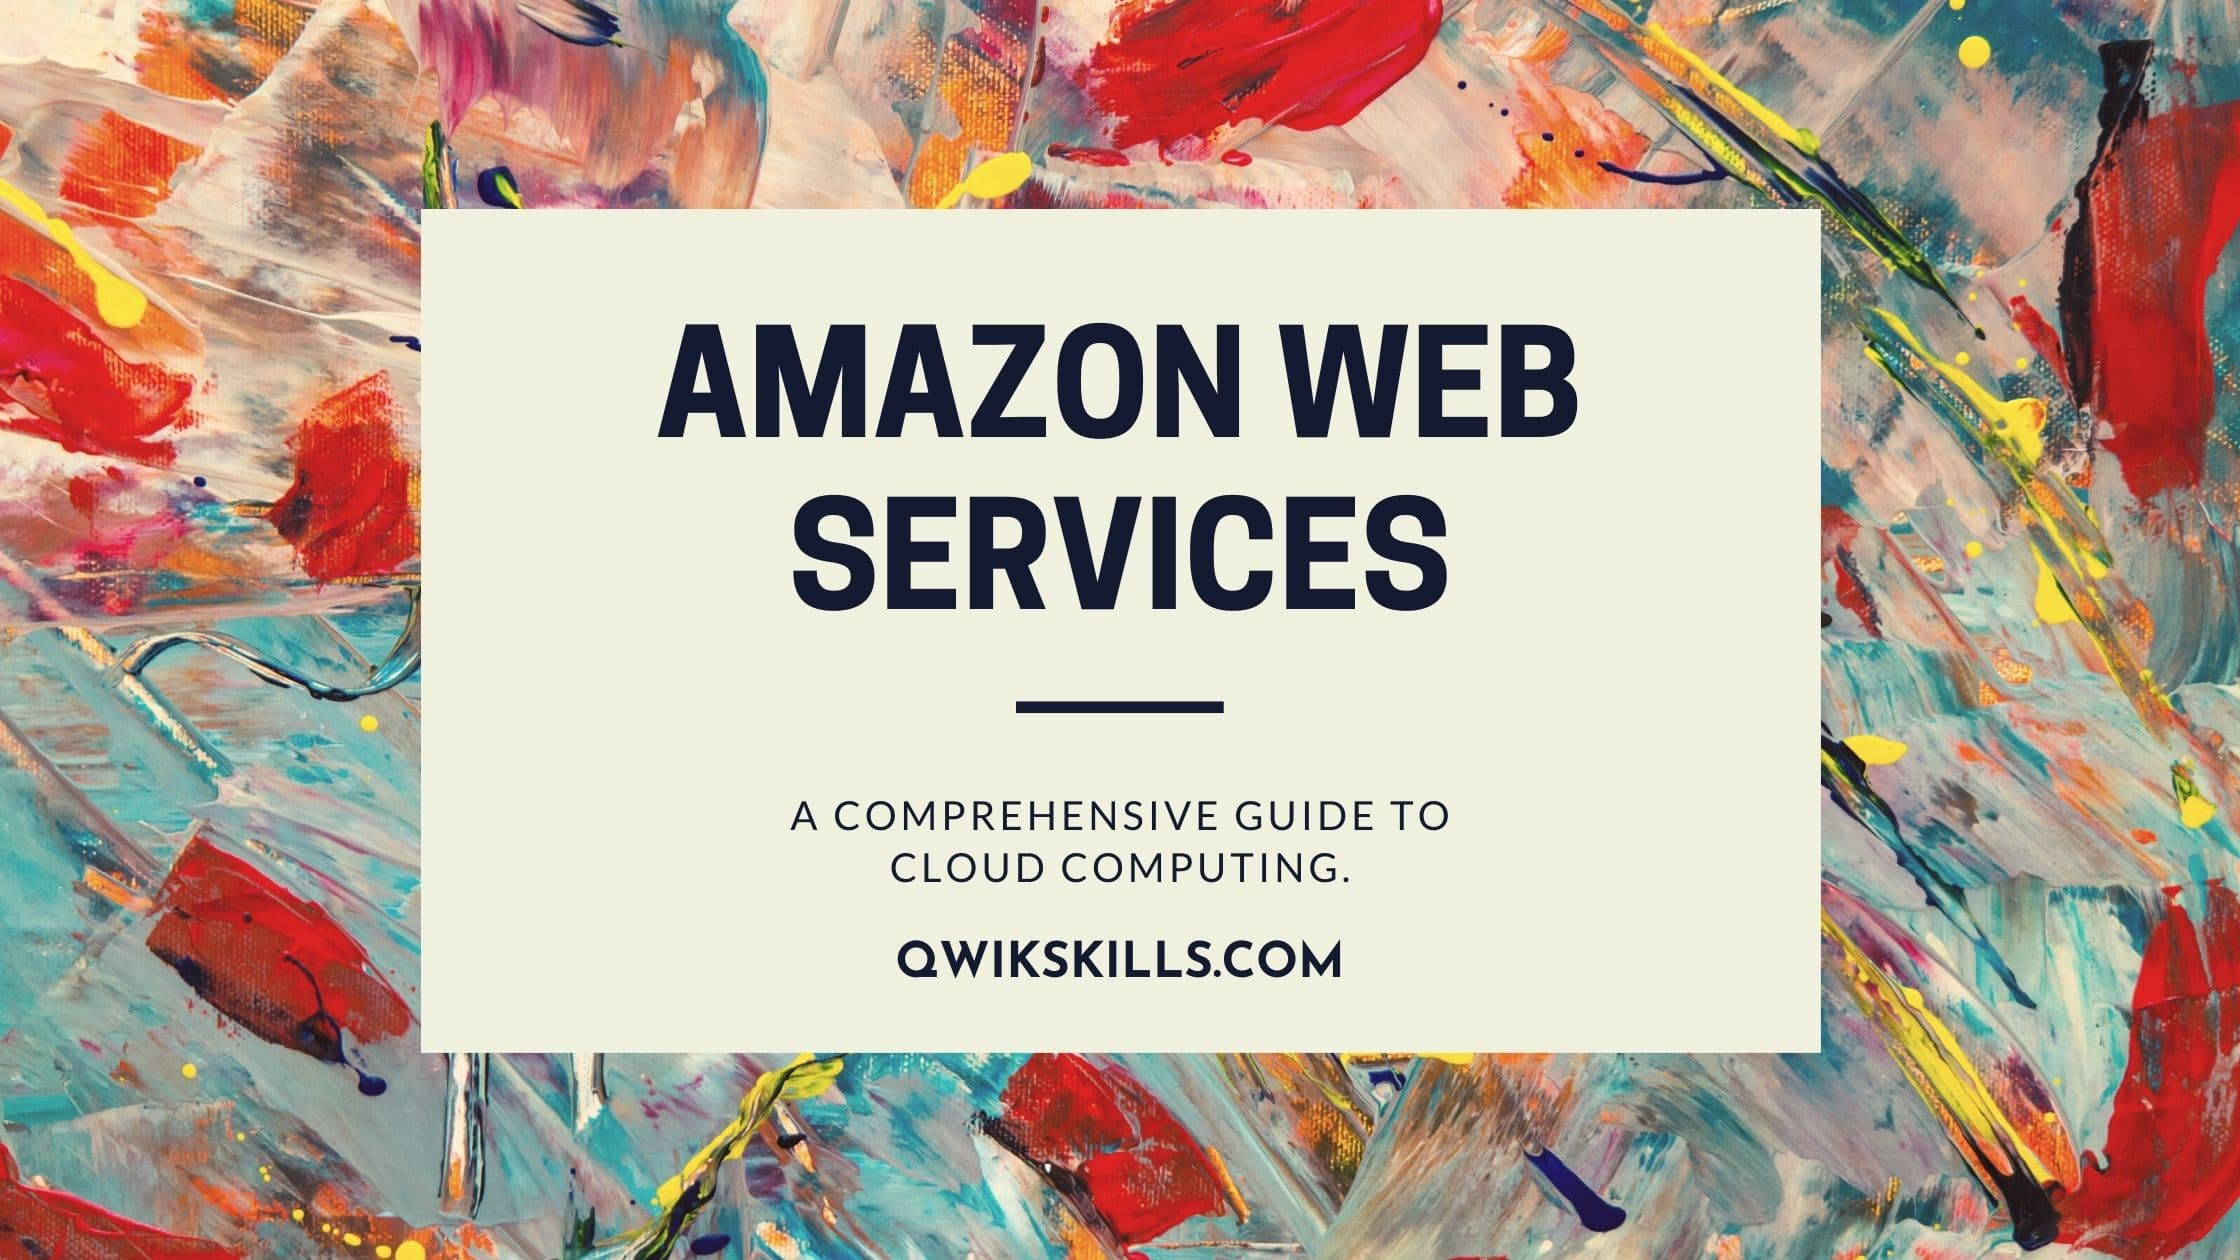 Amazon Web Services - A Comprehensive Guide To Cloud Computing.